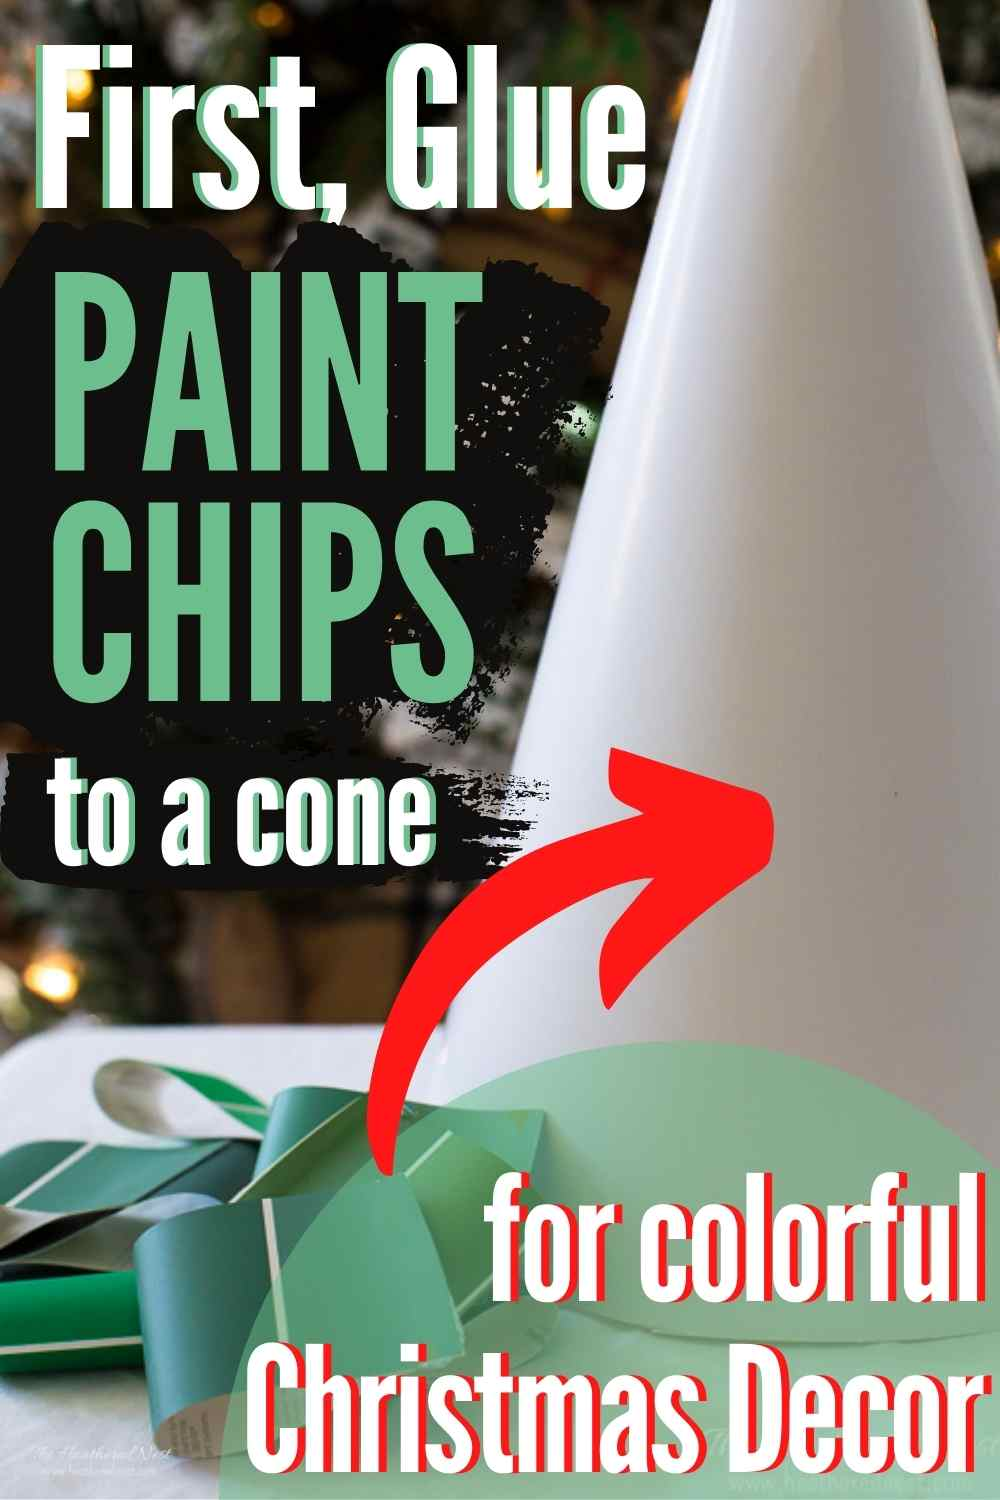 Make a DIY tabletop Christmas tree from paint chips!